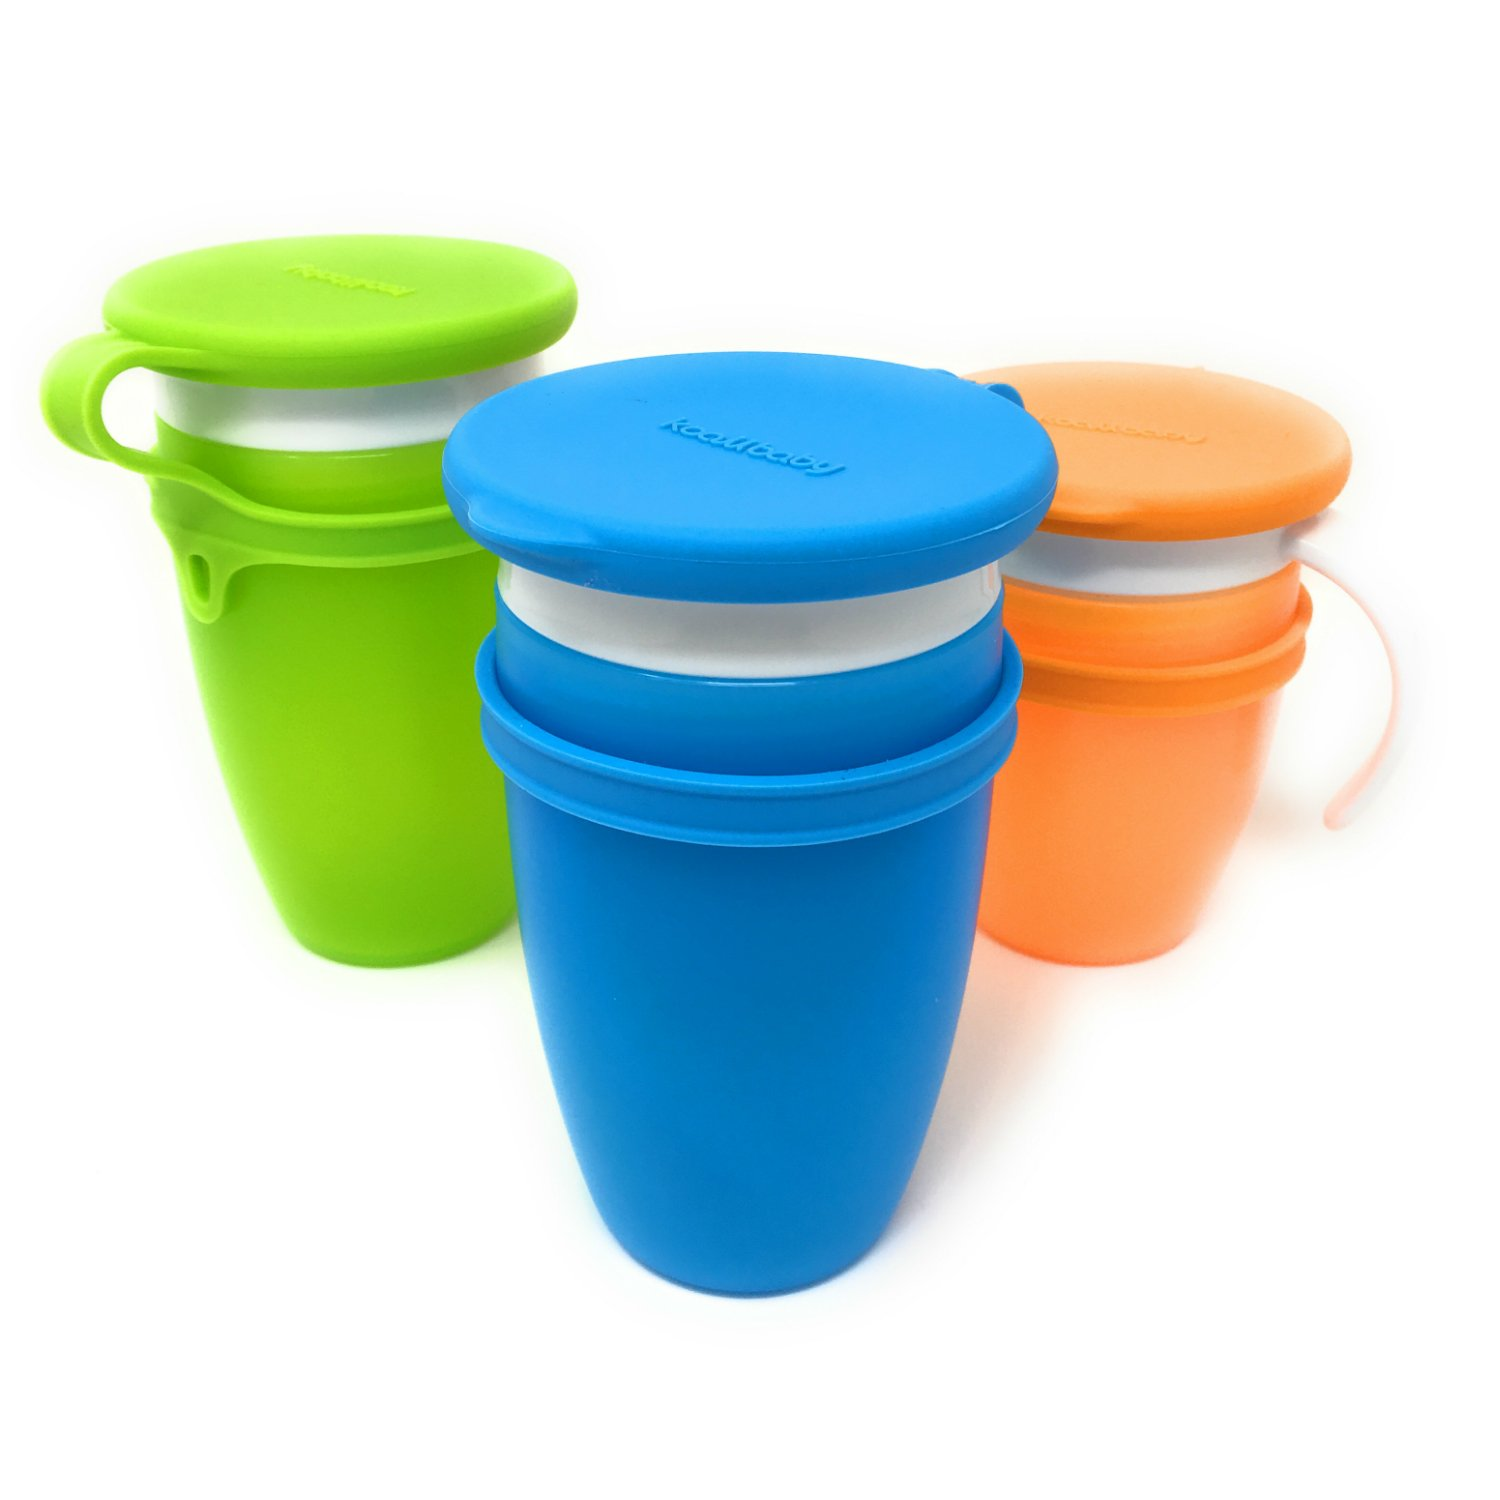 Custom Lids For All Munchkin Miracle 360 Cups. Set Of Three In Blue, Green & Orange.